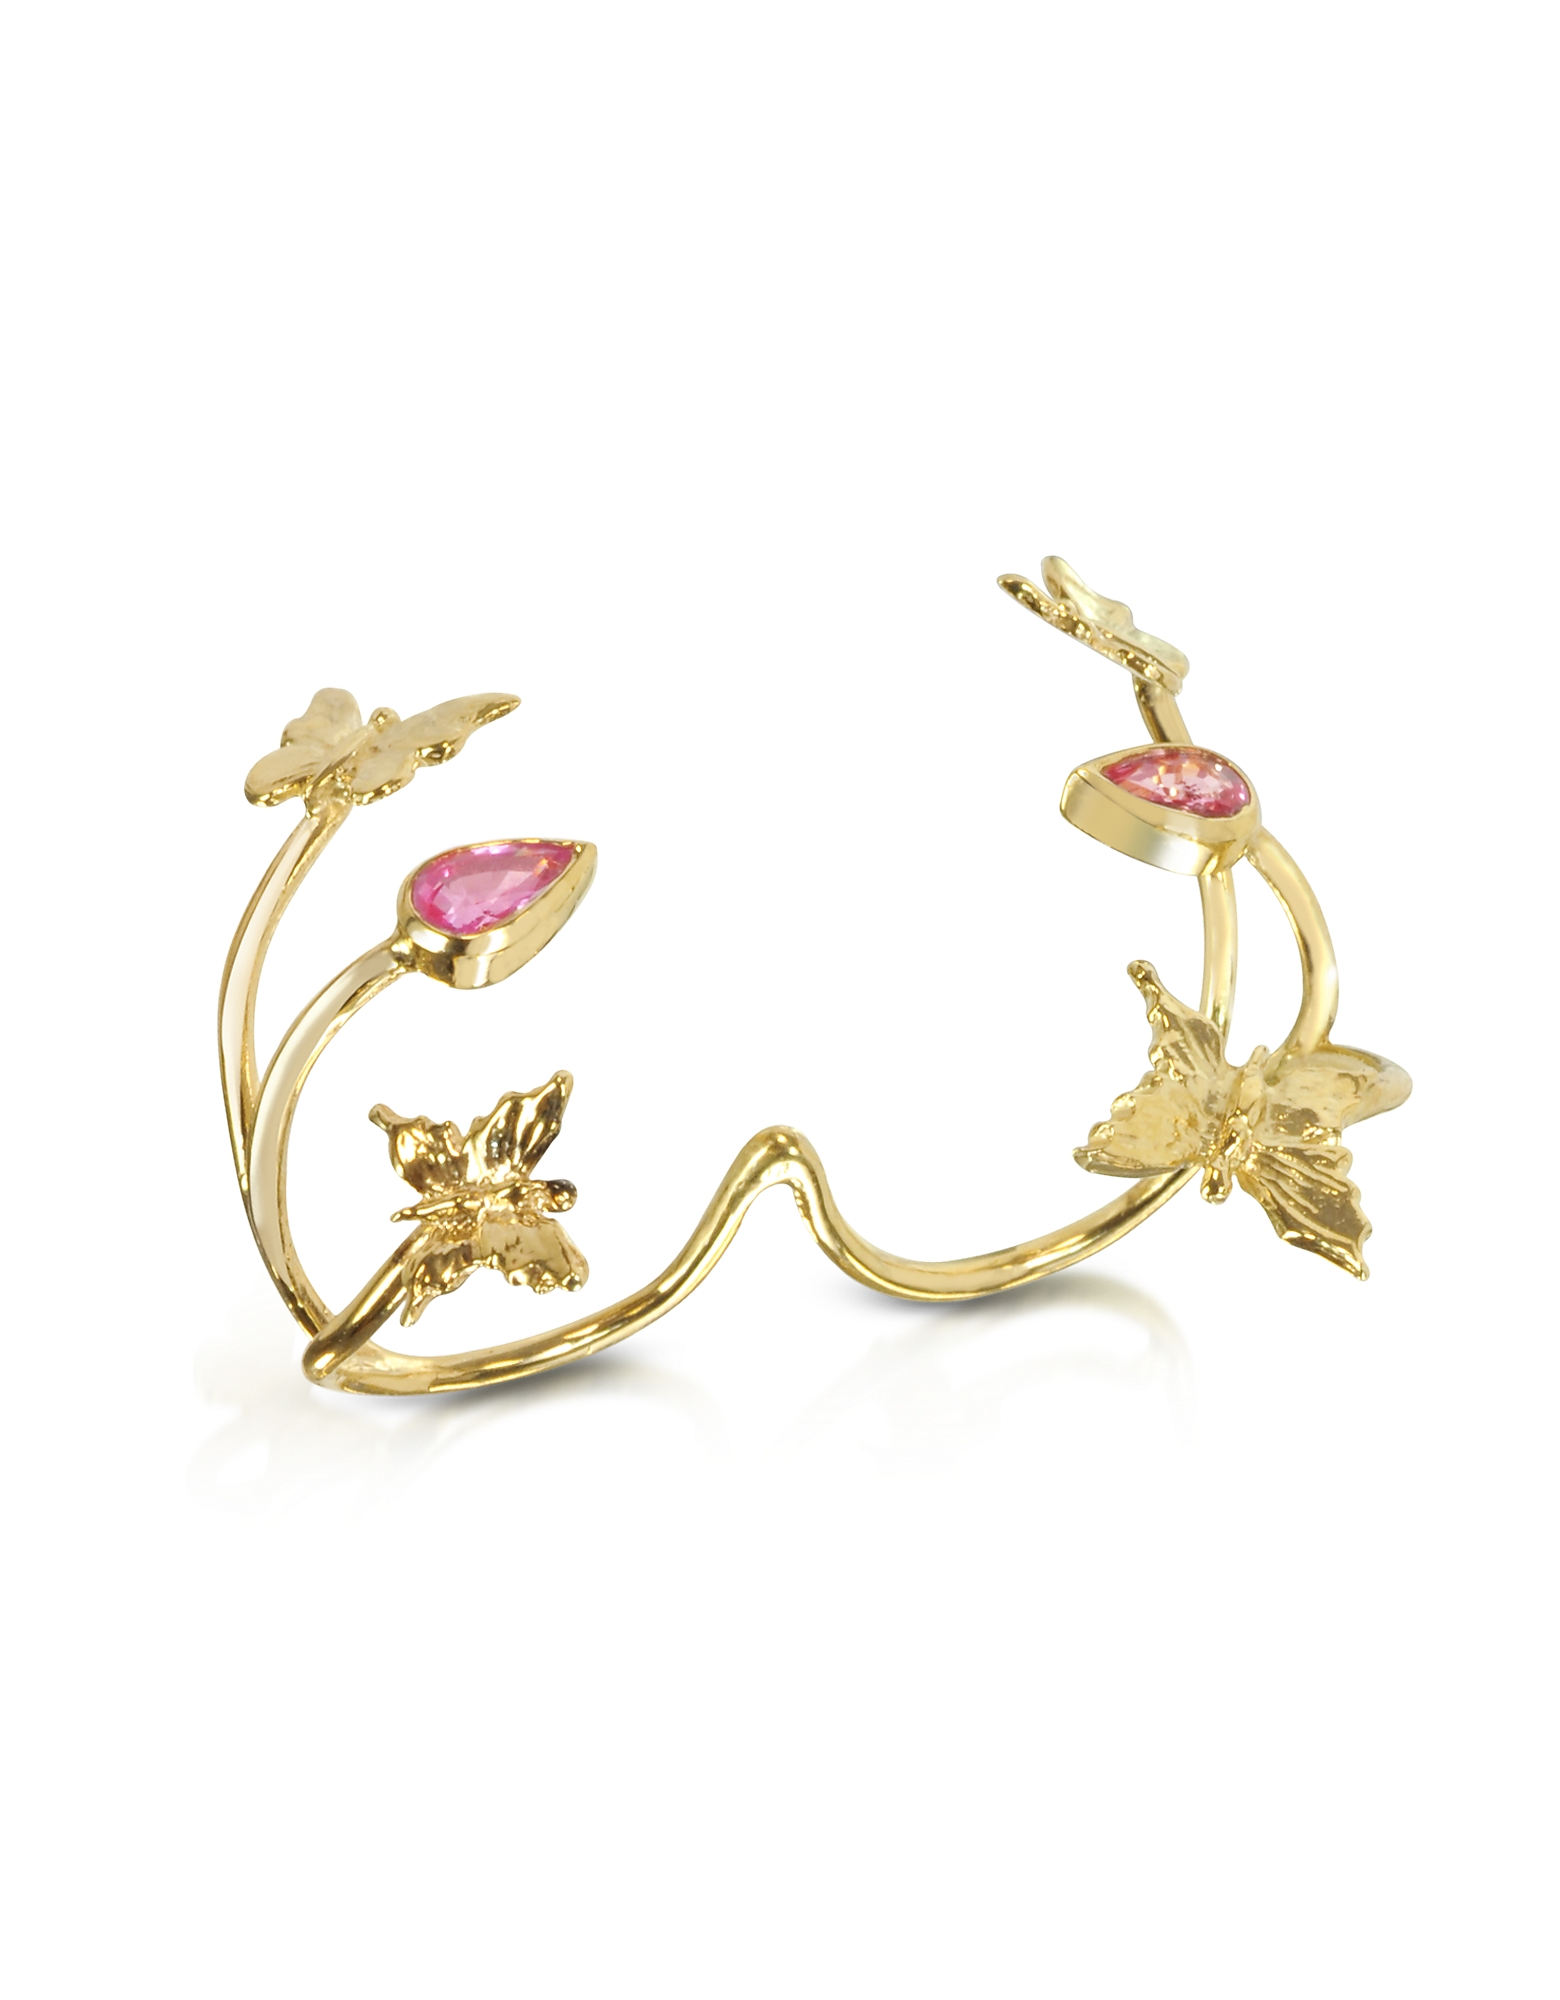 Bernard Delettrez Rings, Butterfly and Pink Sapphires Gold 2 Fingers Ring